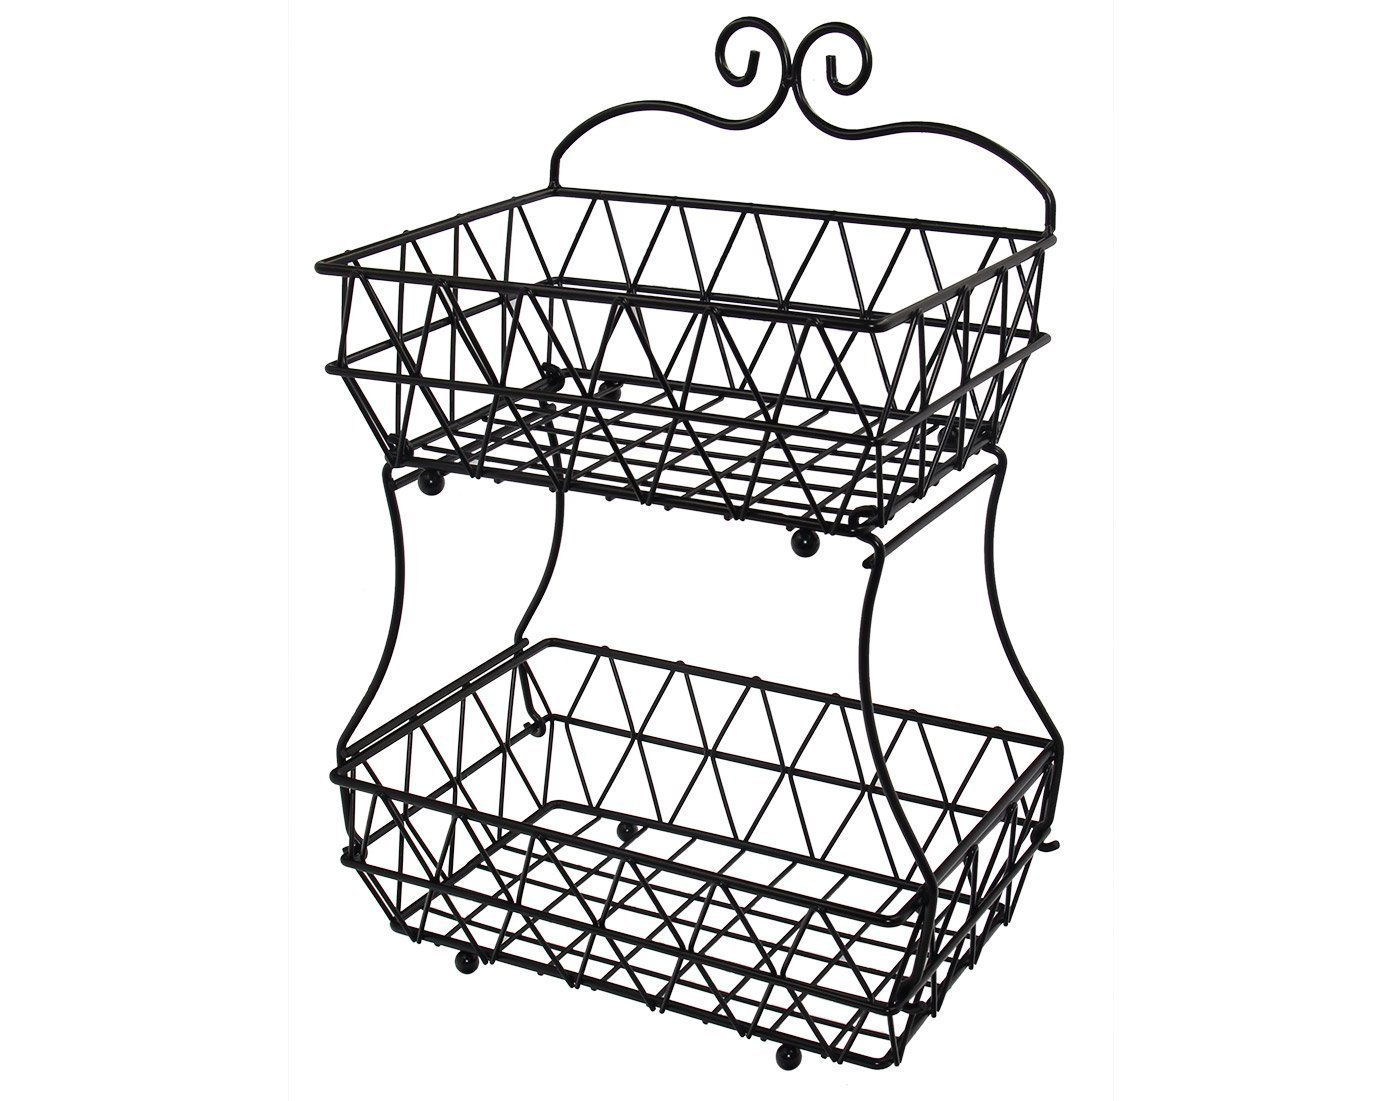 Upgraded Version - ESYLIFE 2 Tier Fruit Bread Basket Display Stand - Screws Free Design ShiYuan